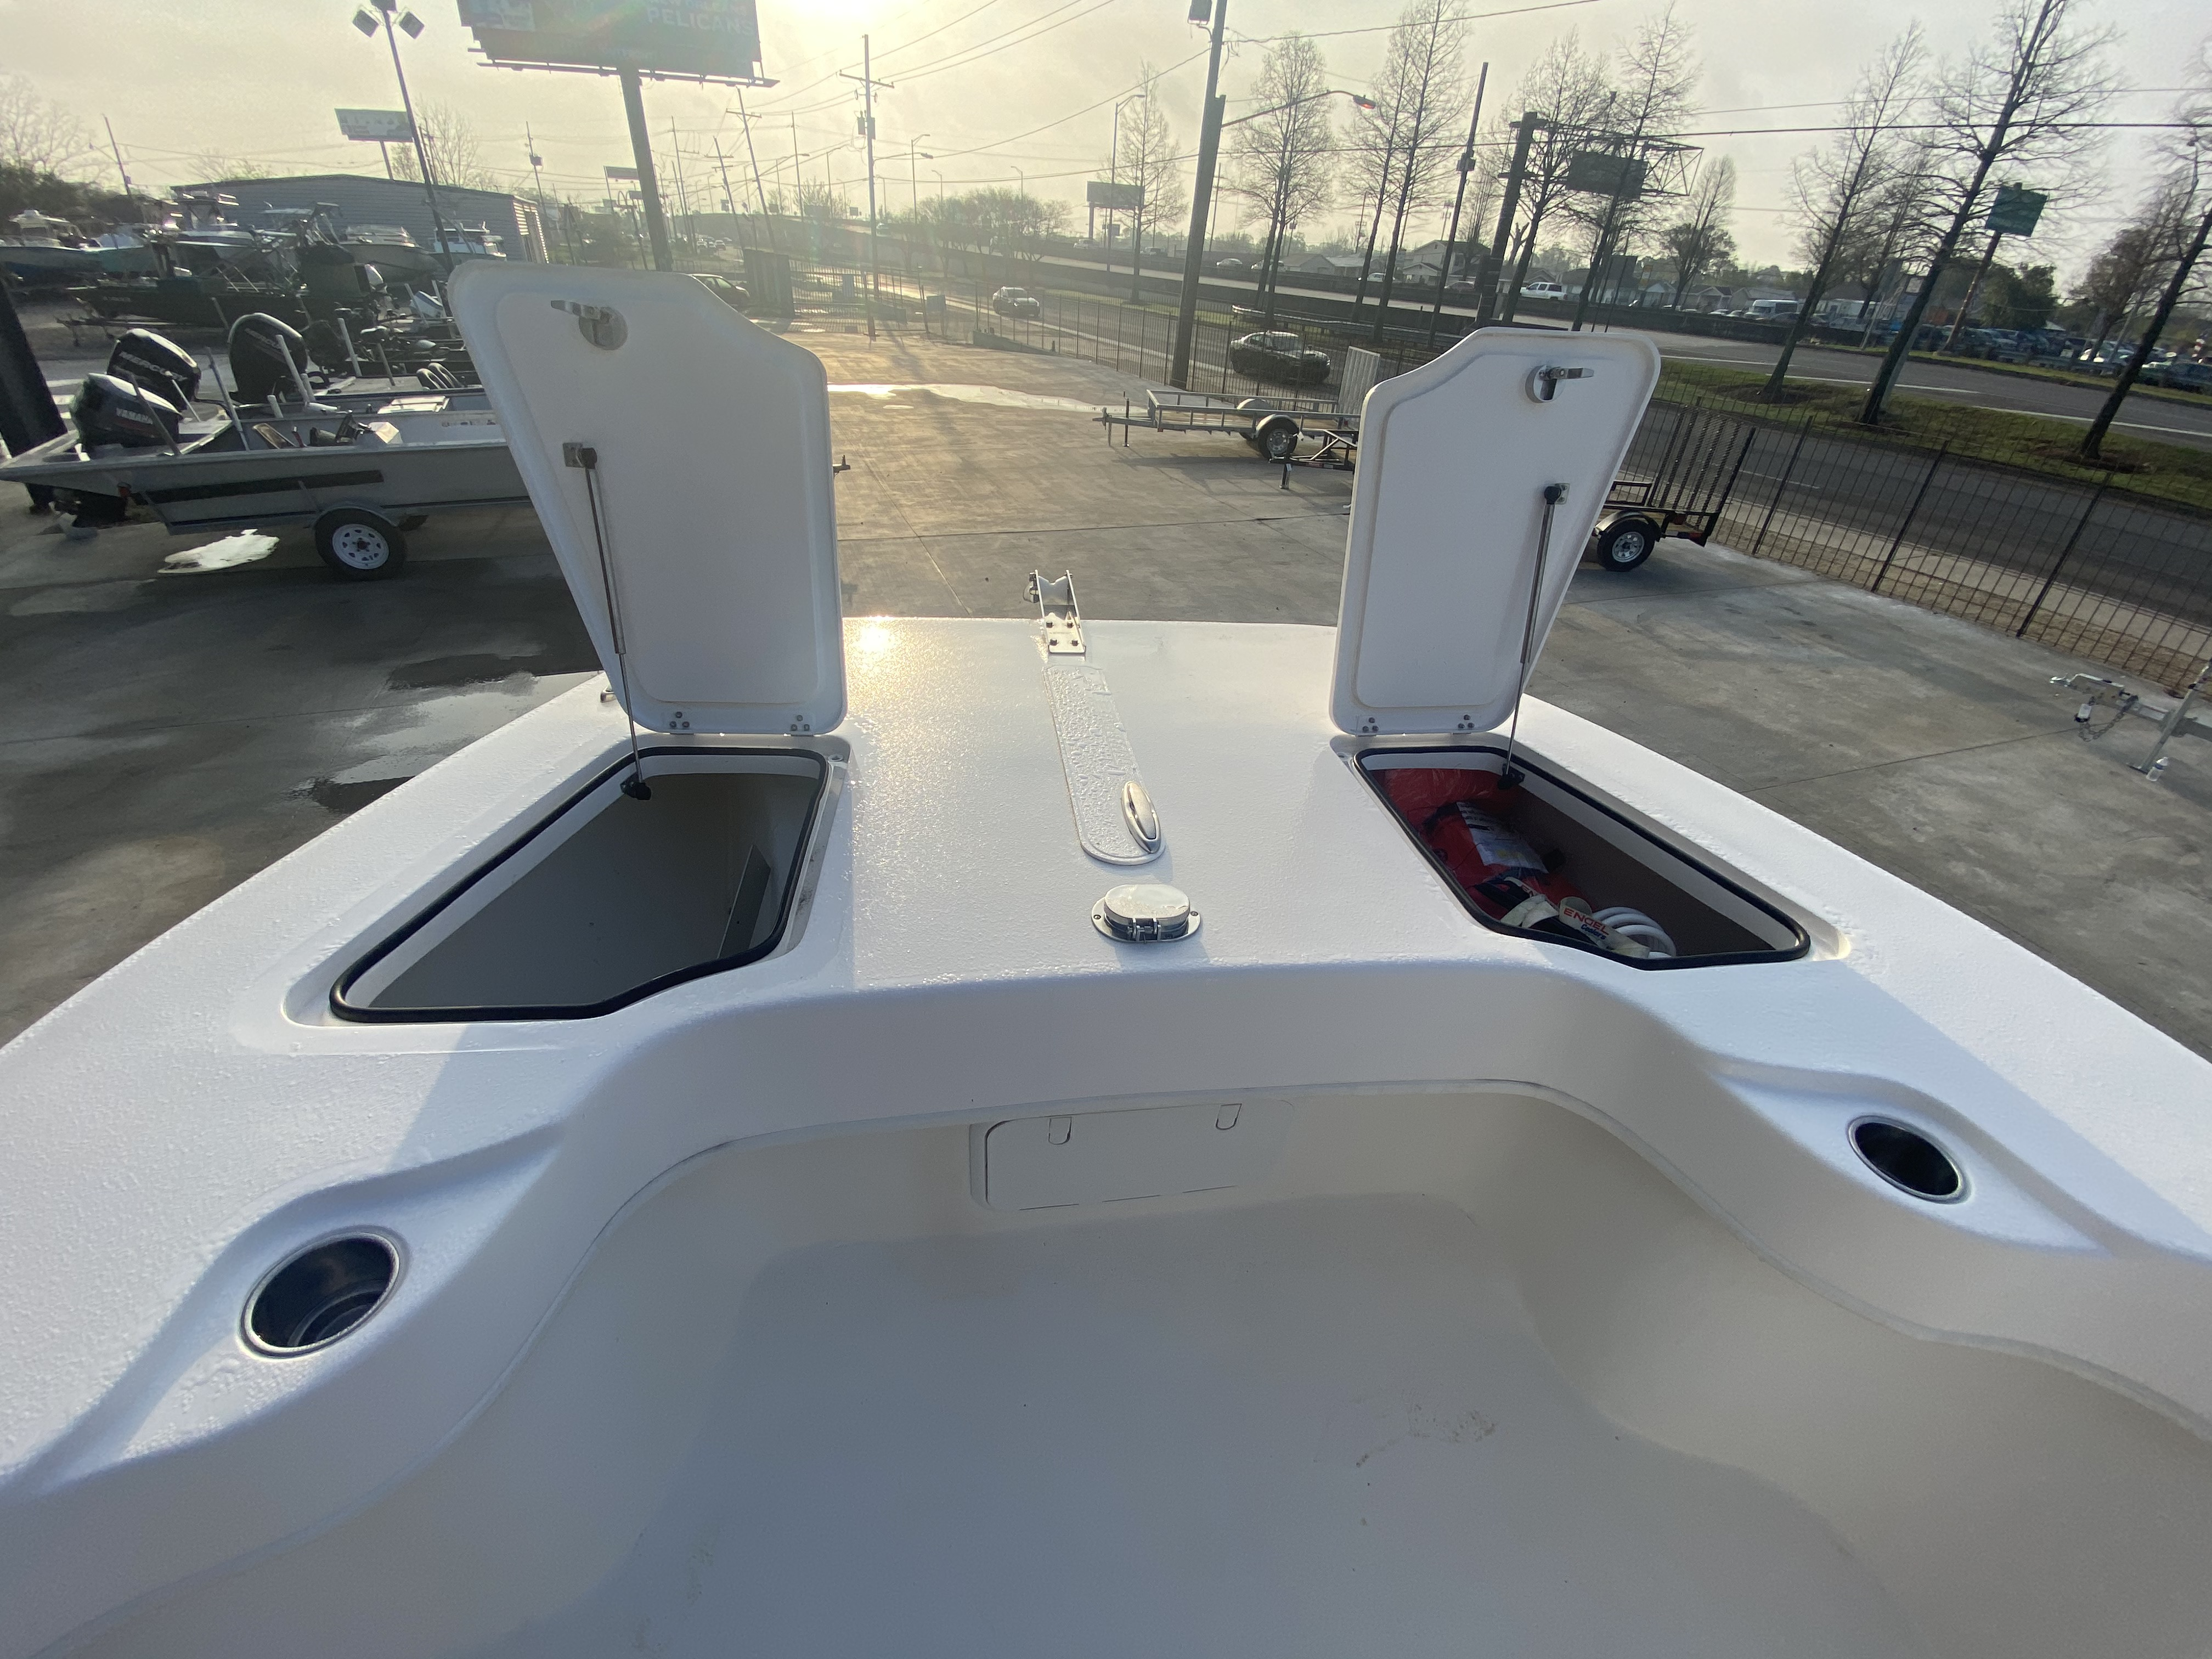 2020 Twin Vee boat for sale, model of the boat is 26 Pro & Image # 22 of 24